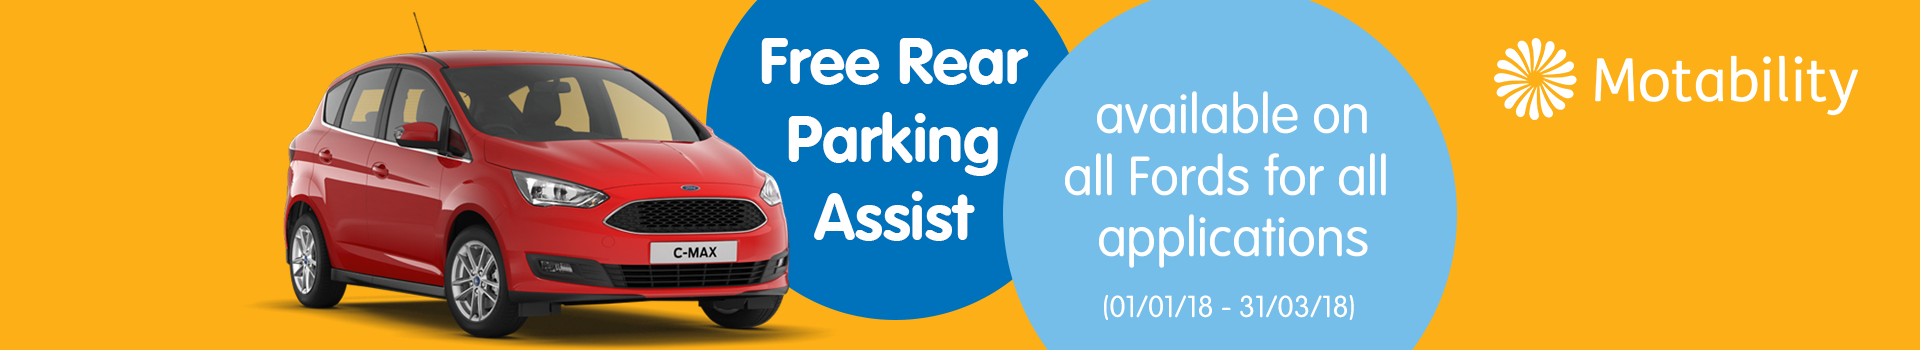 Free Rear Park Assist